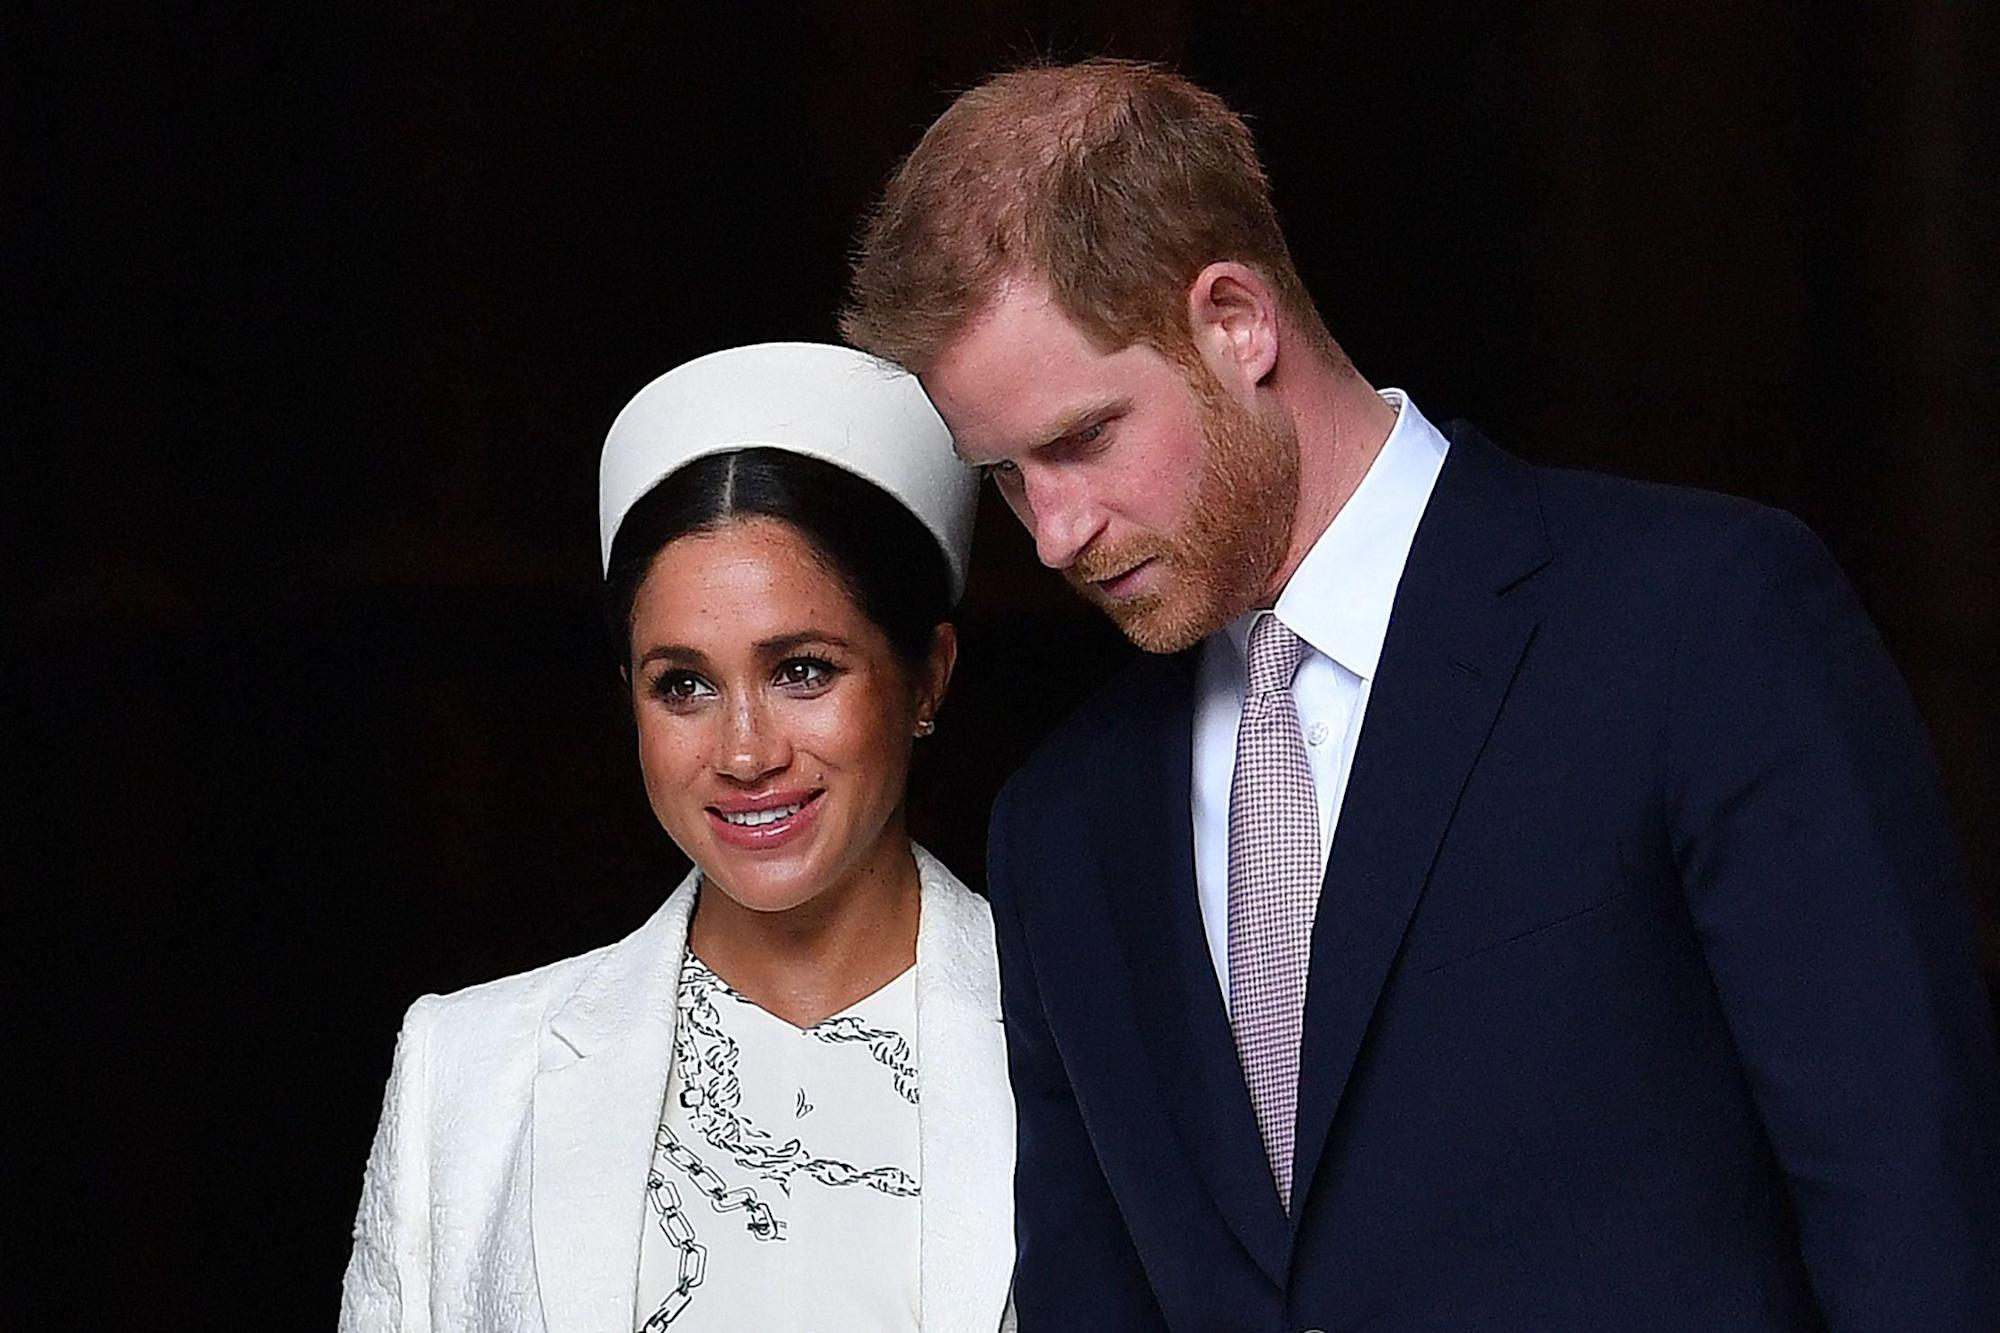 Prince Harry and Meghan 'want Lilibet christened at Windsor in front of the Queen'